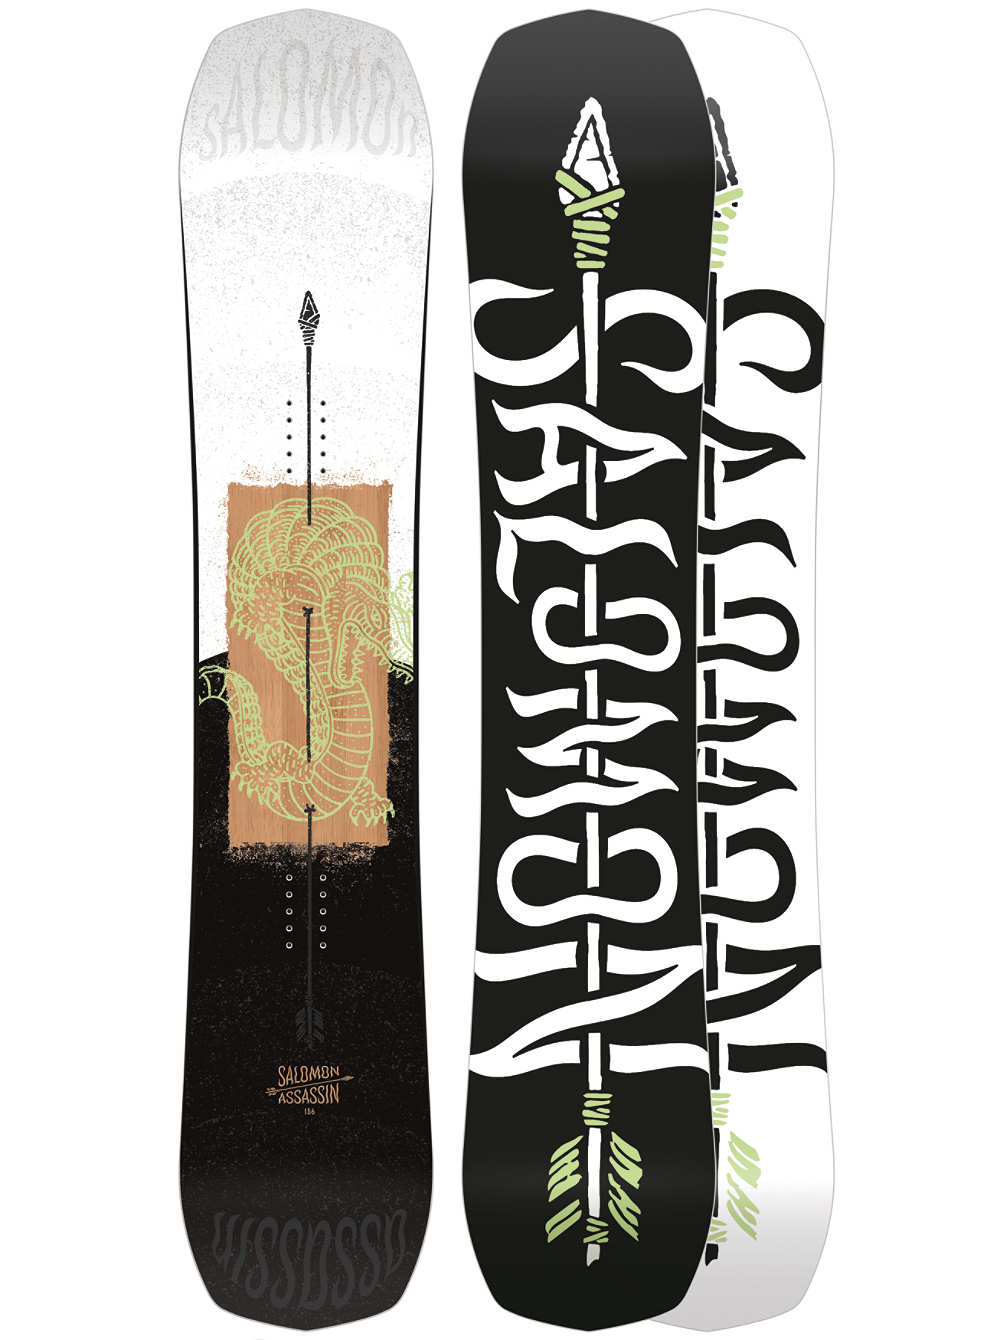 Top Snowboards Salomon Assassin 2020